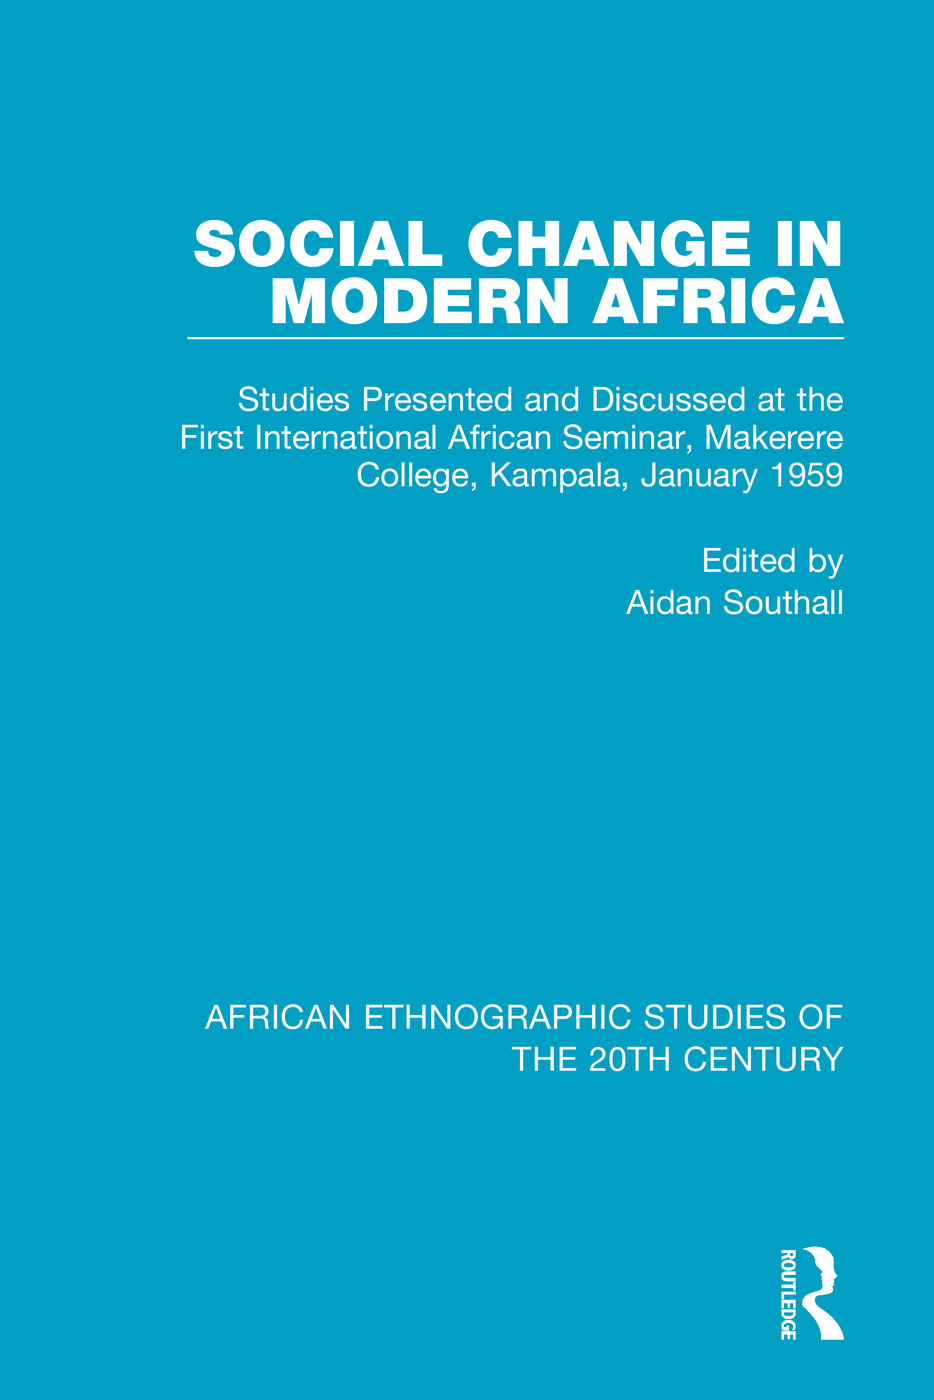 Social Change in Modern Africa: Studies Presented and Discussed at the First International African Seminar, Makerere College, Kampala, January 1959 book cover